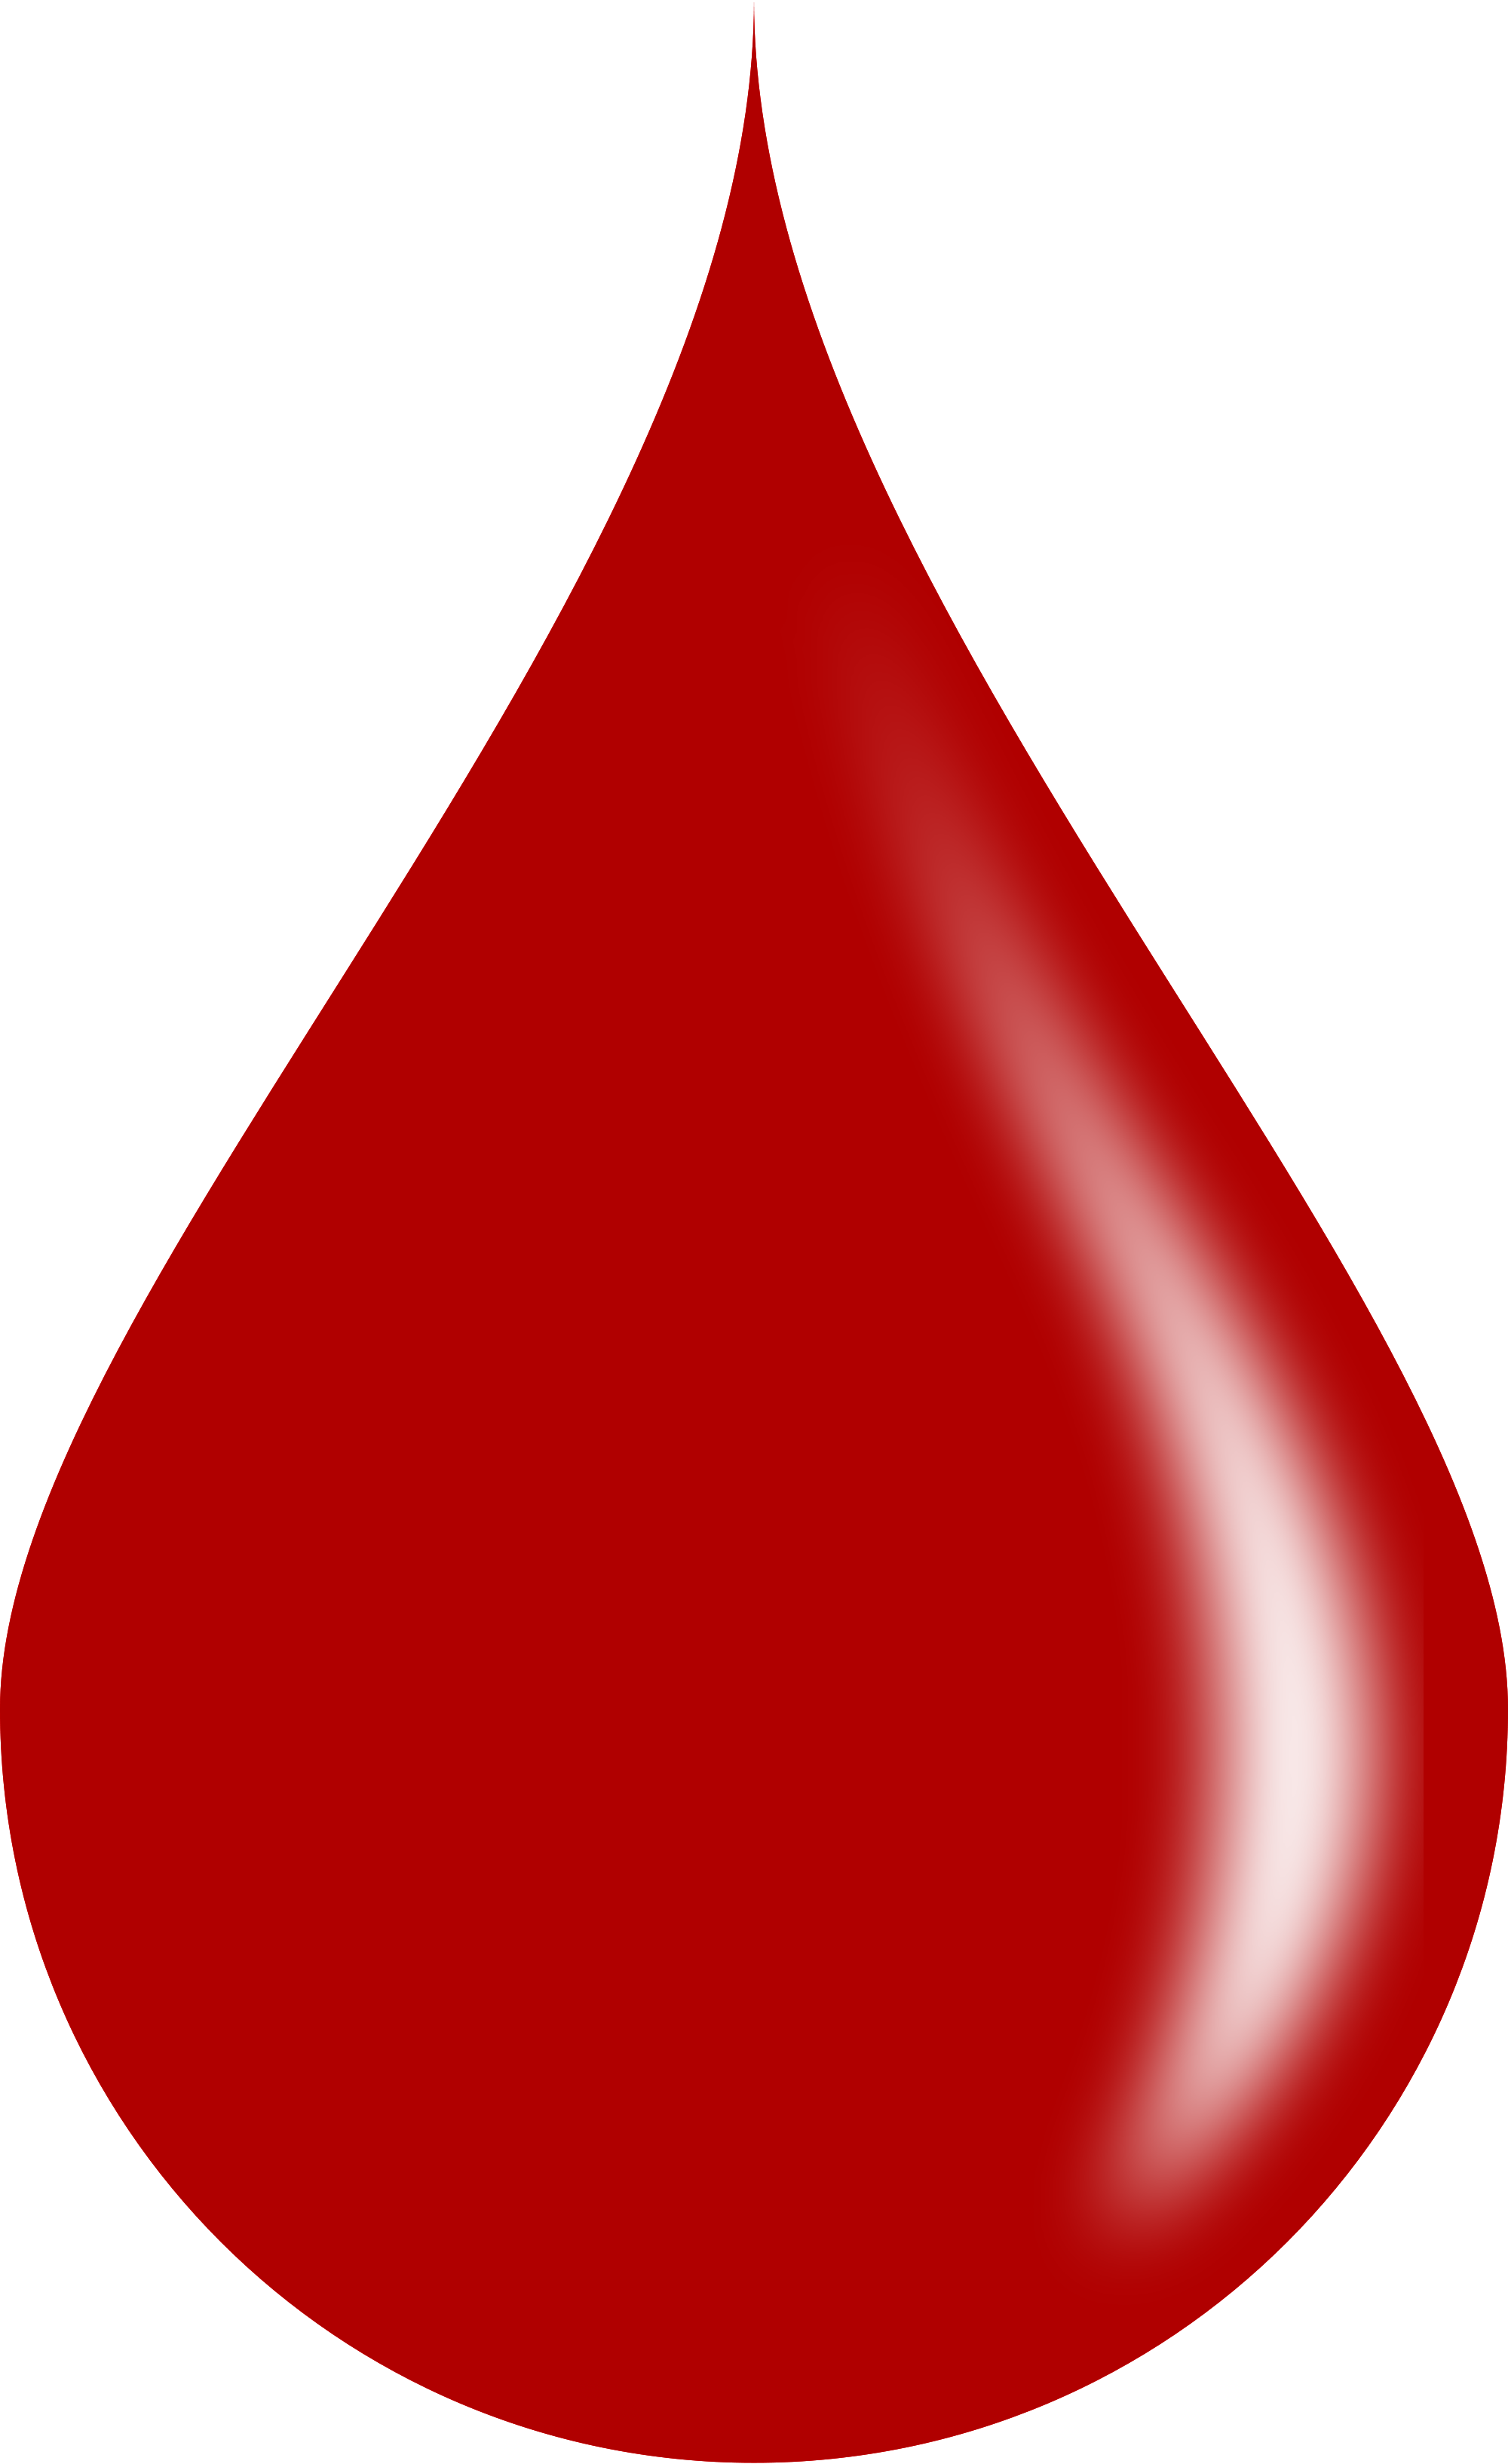 Blood svg #12, Download drawings